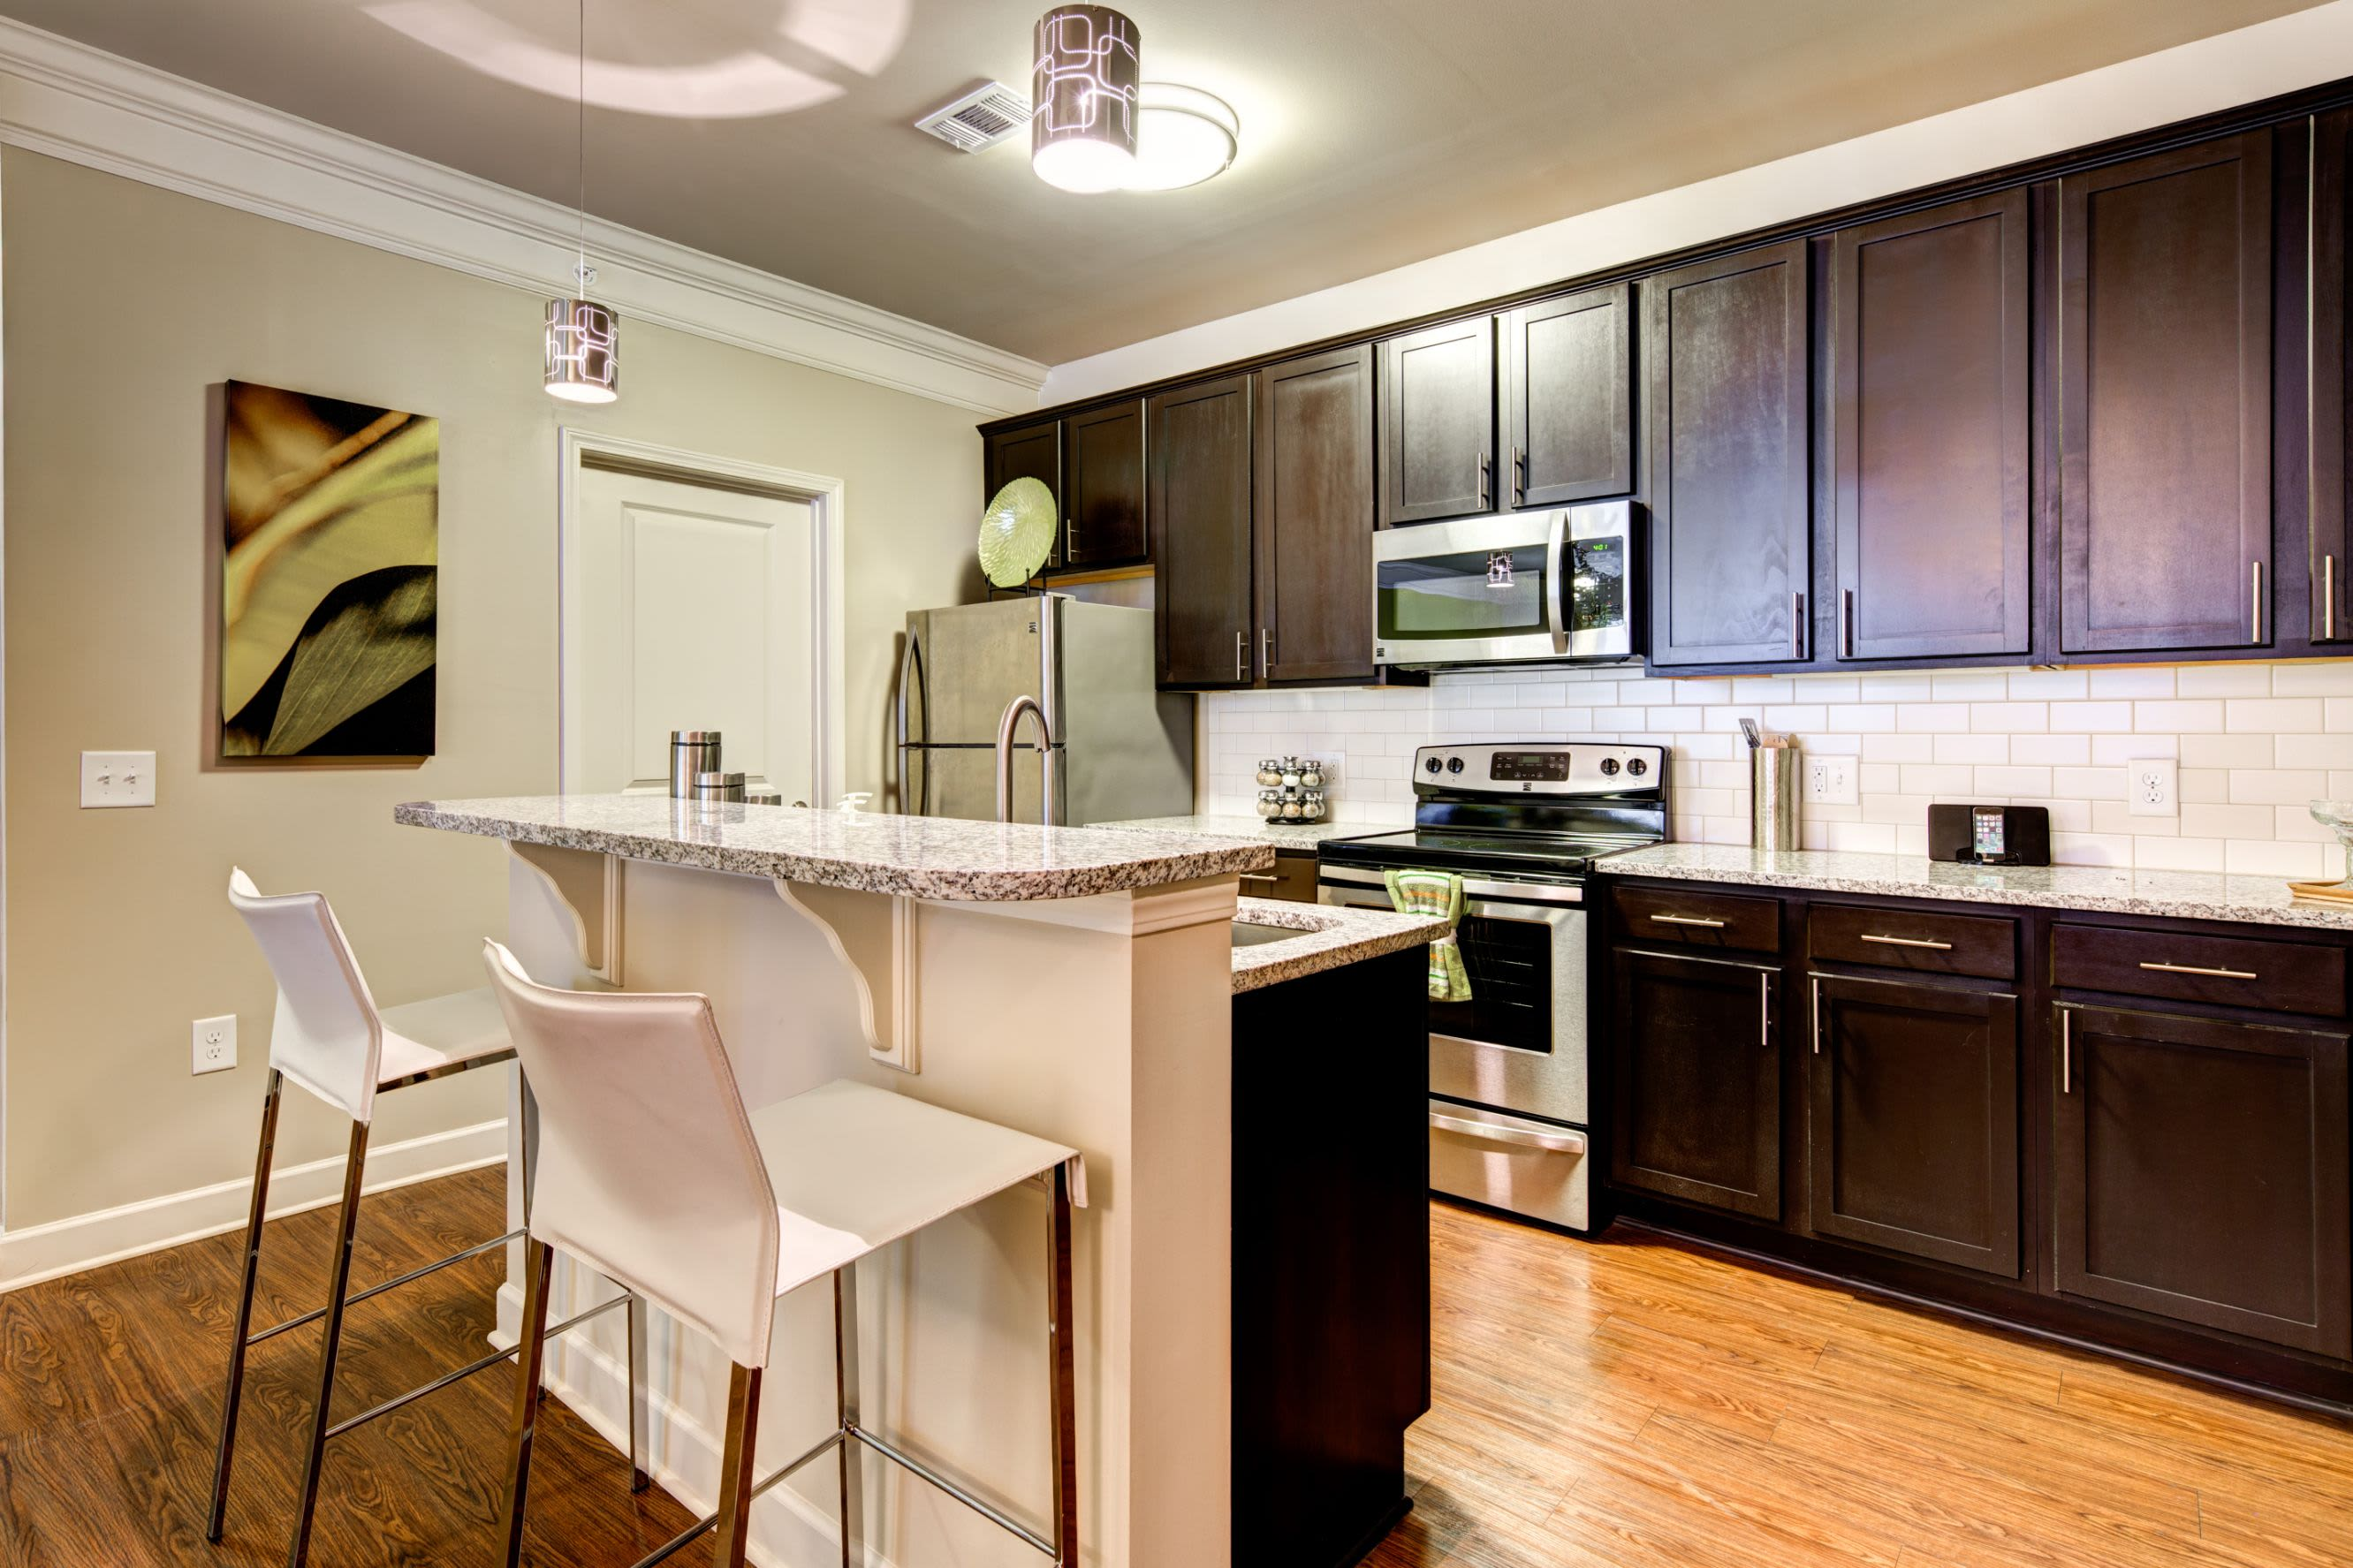 Kitchen with breakfast bar at Marquis at Morrison Plantation in Mooresville, North Carolina